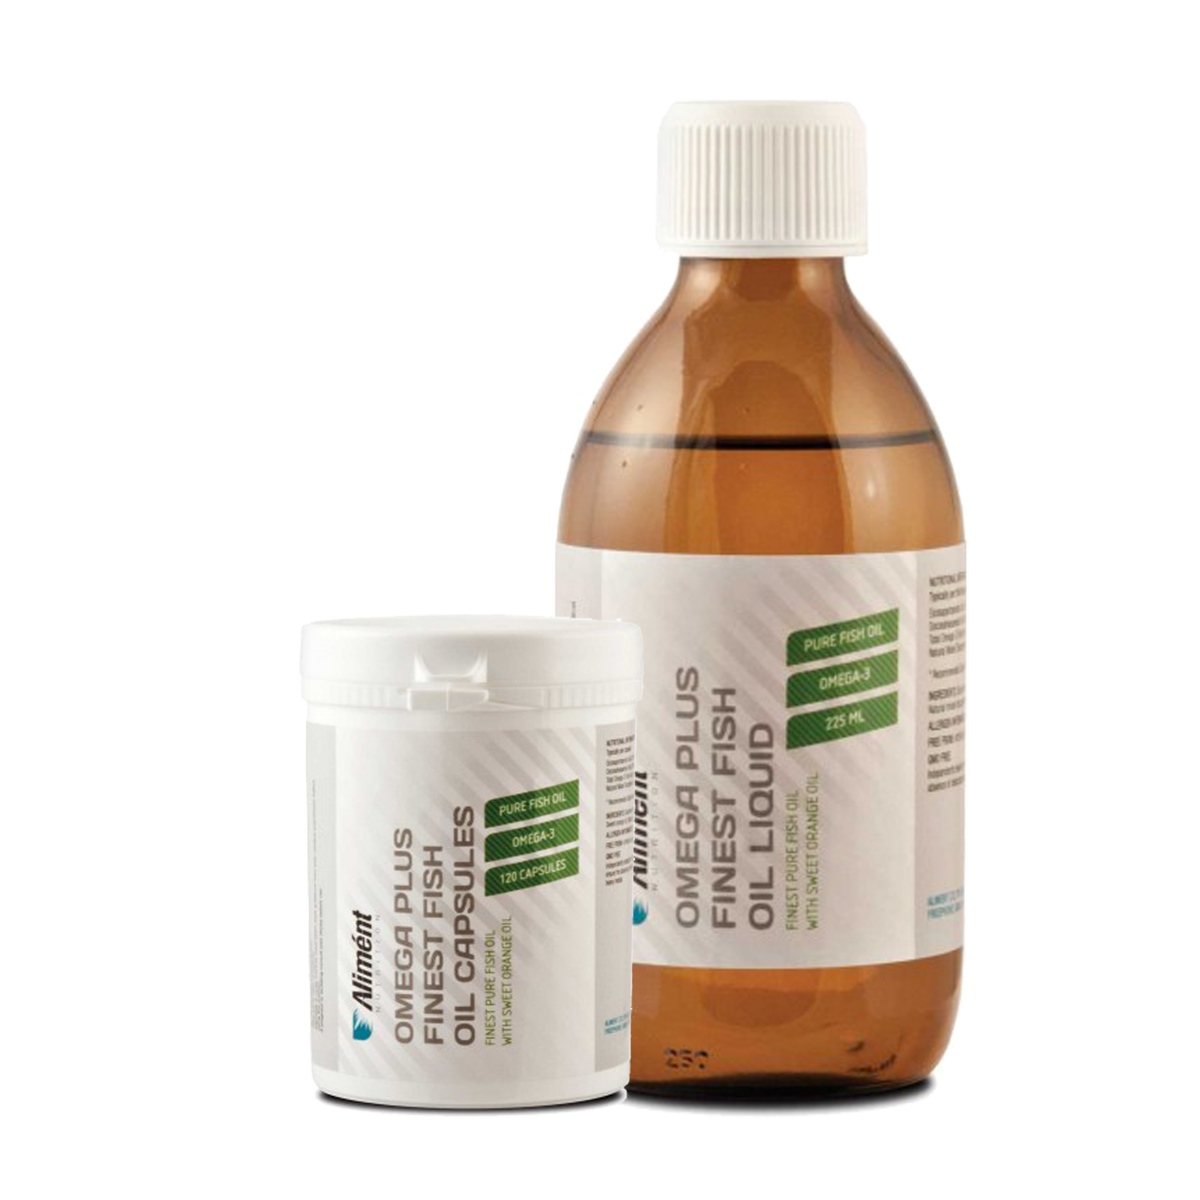 Aliment Fish Oil Supplements - The Heart Of The Company After 15 Years